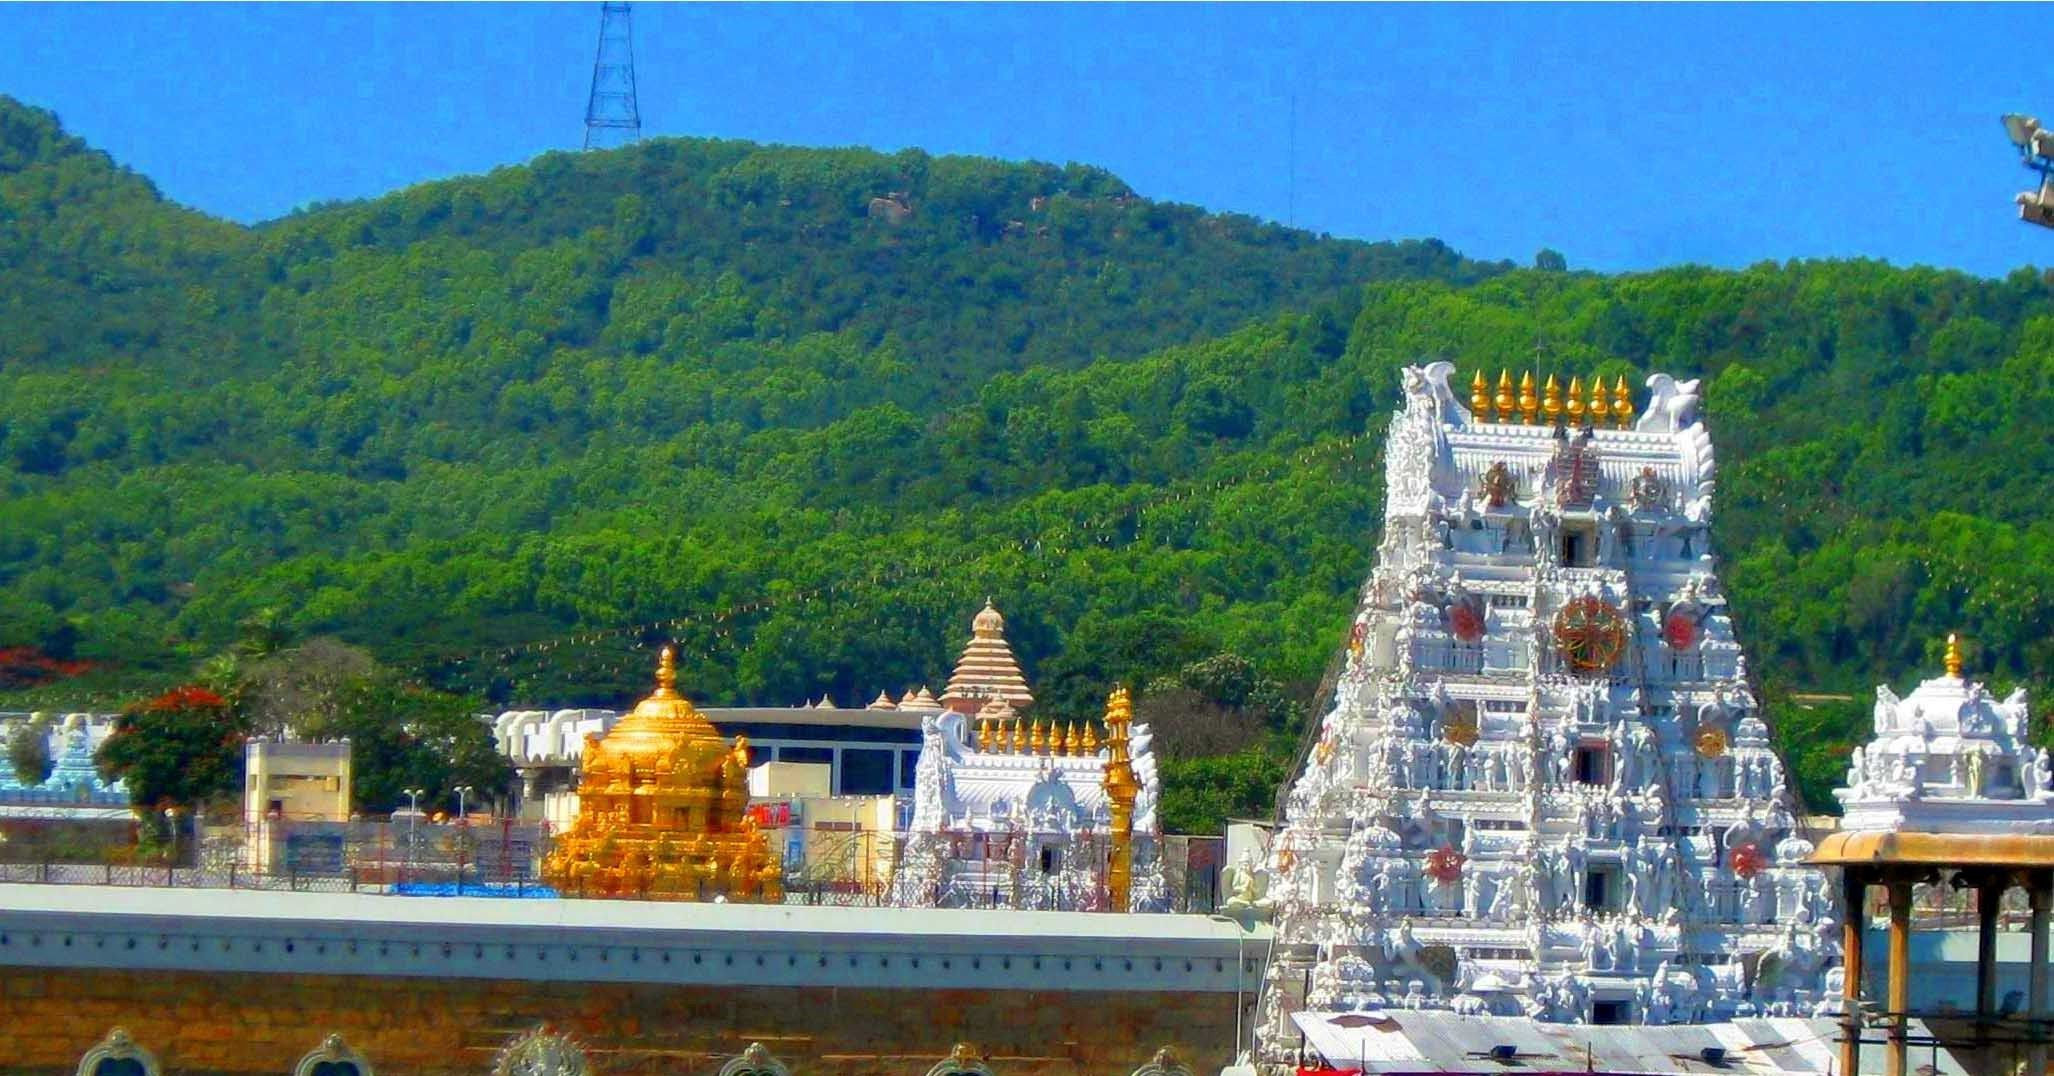 One day trip to Tirupati from Chennai